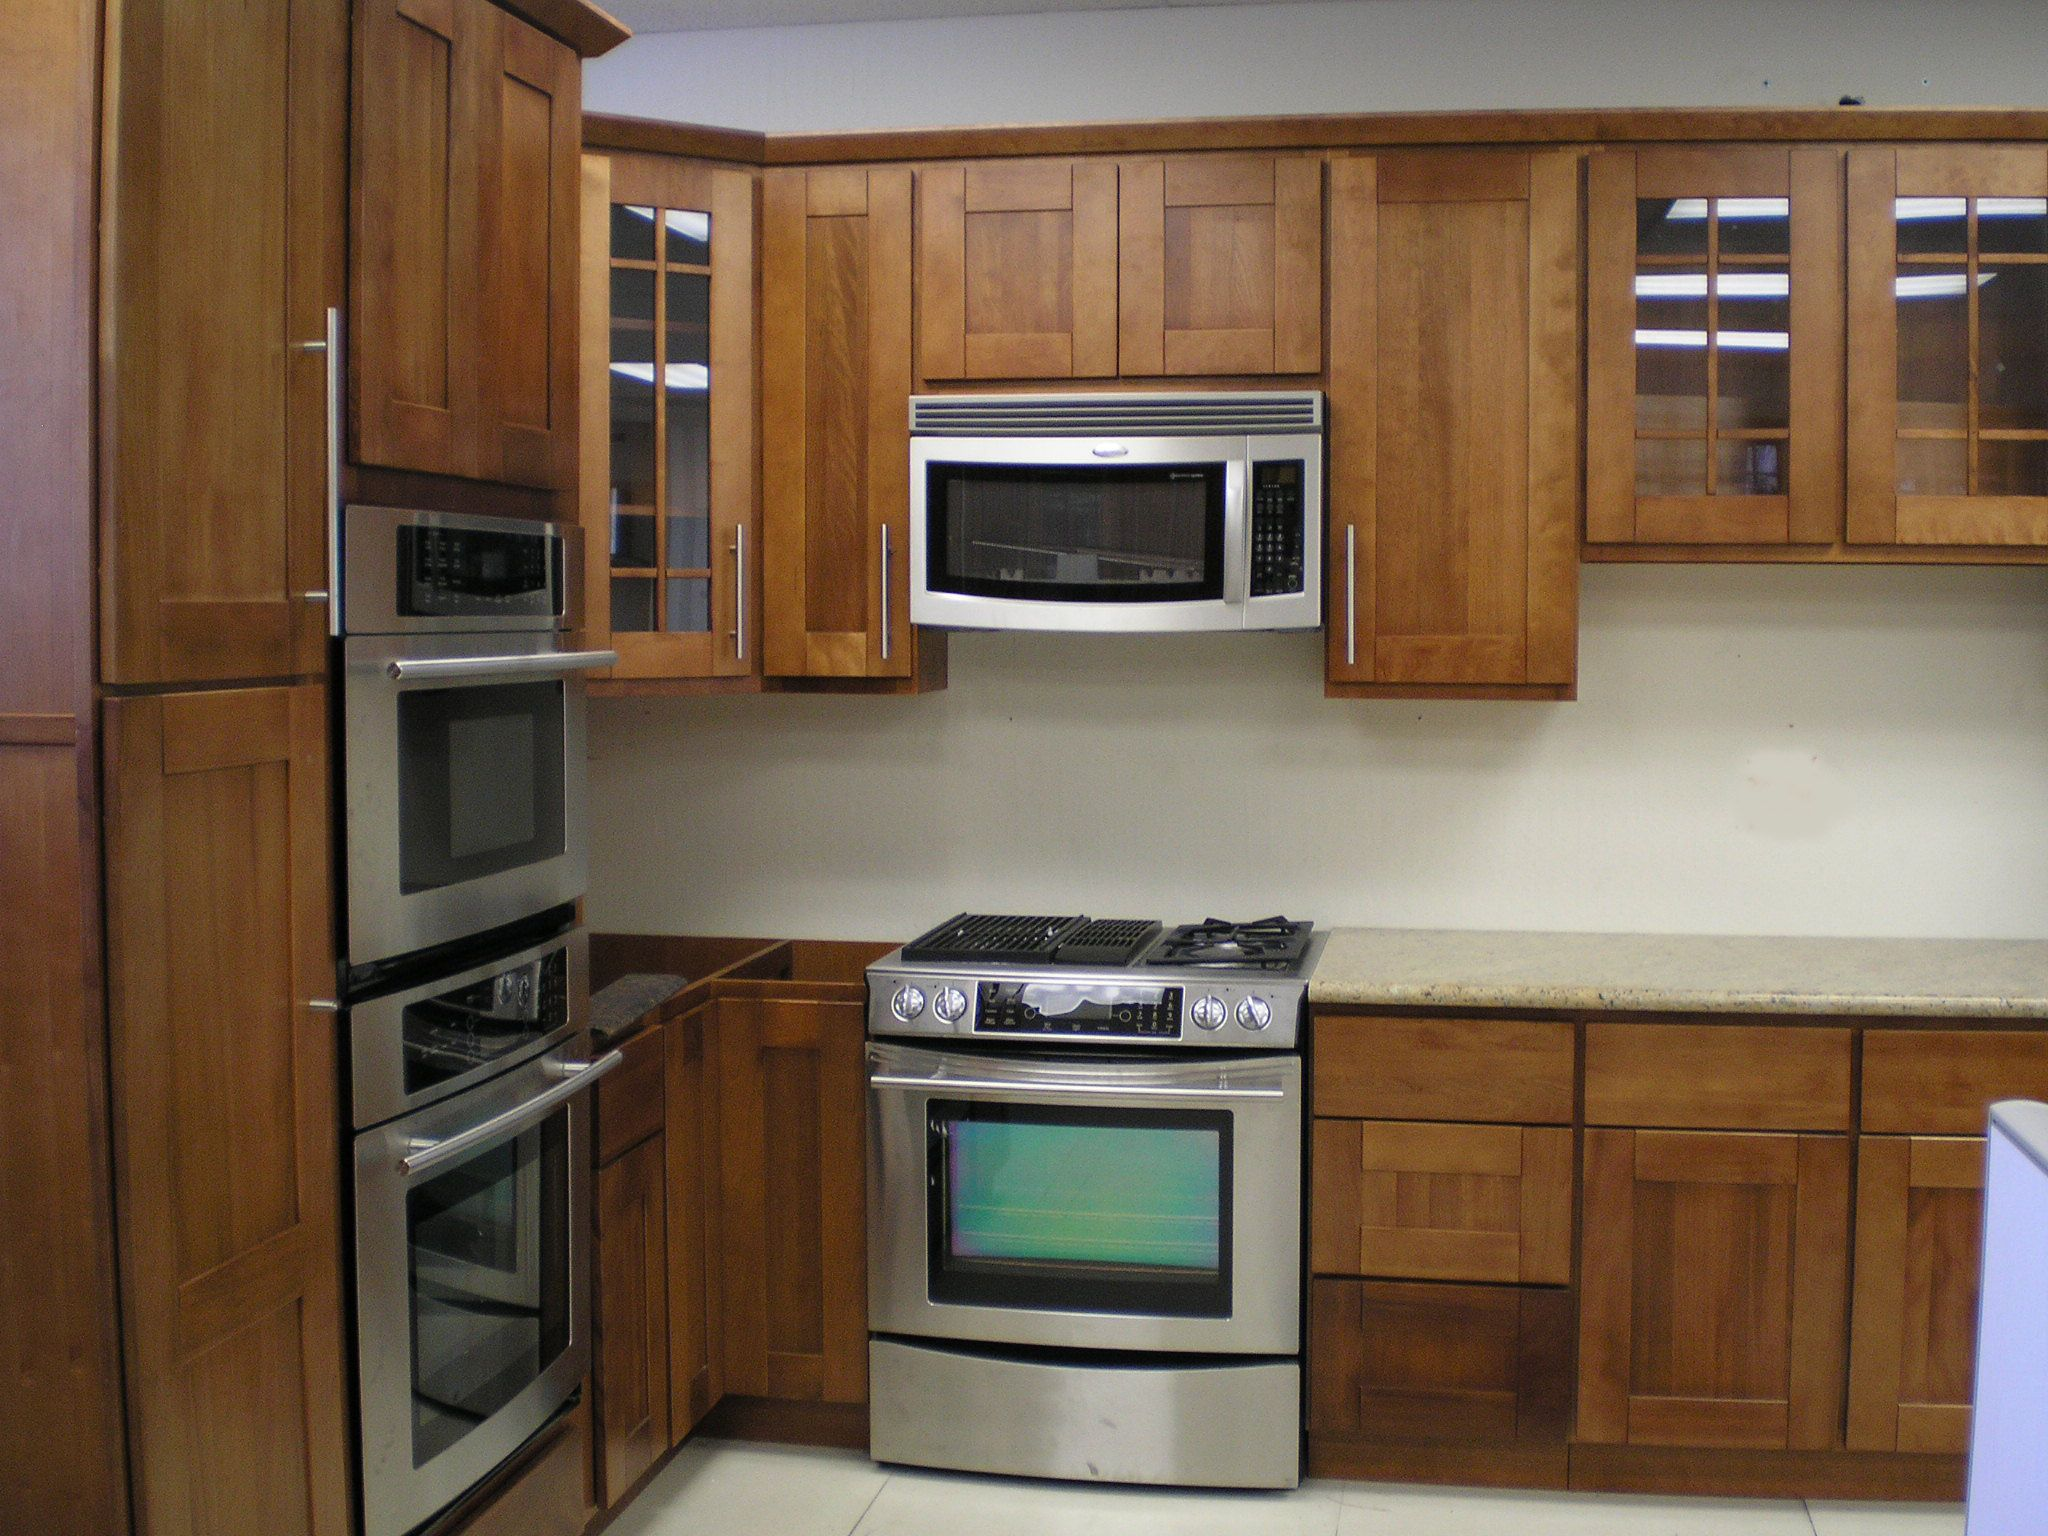 Kitchen Cabinets Closeout Kitchen Cabinets On Raised Panel - Shaker style furniture for your kitchen cabinets